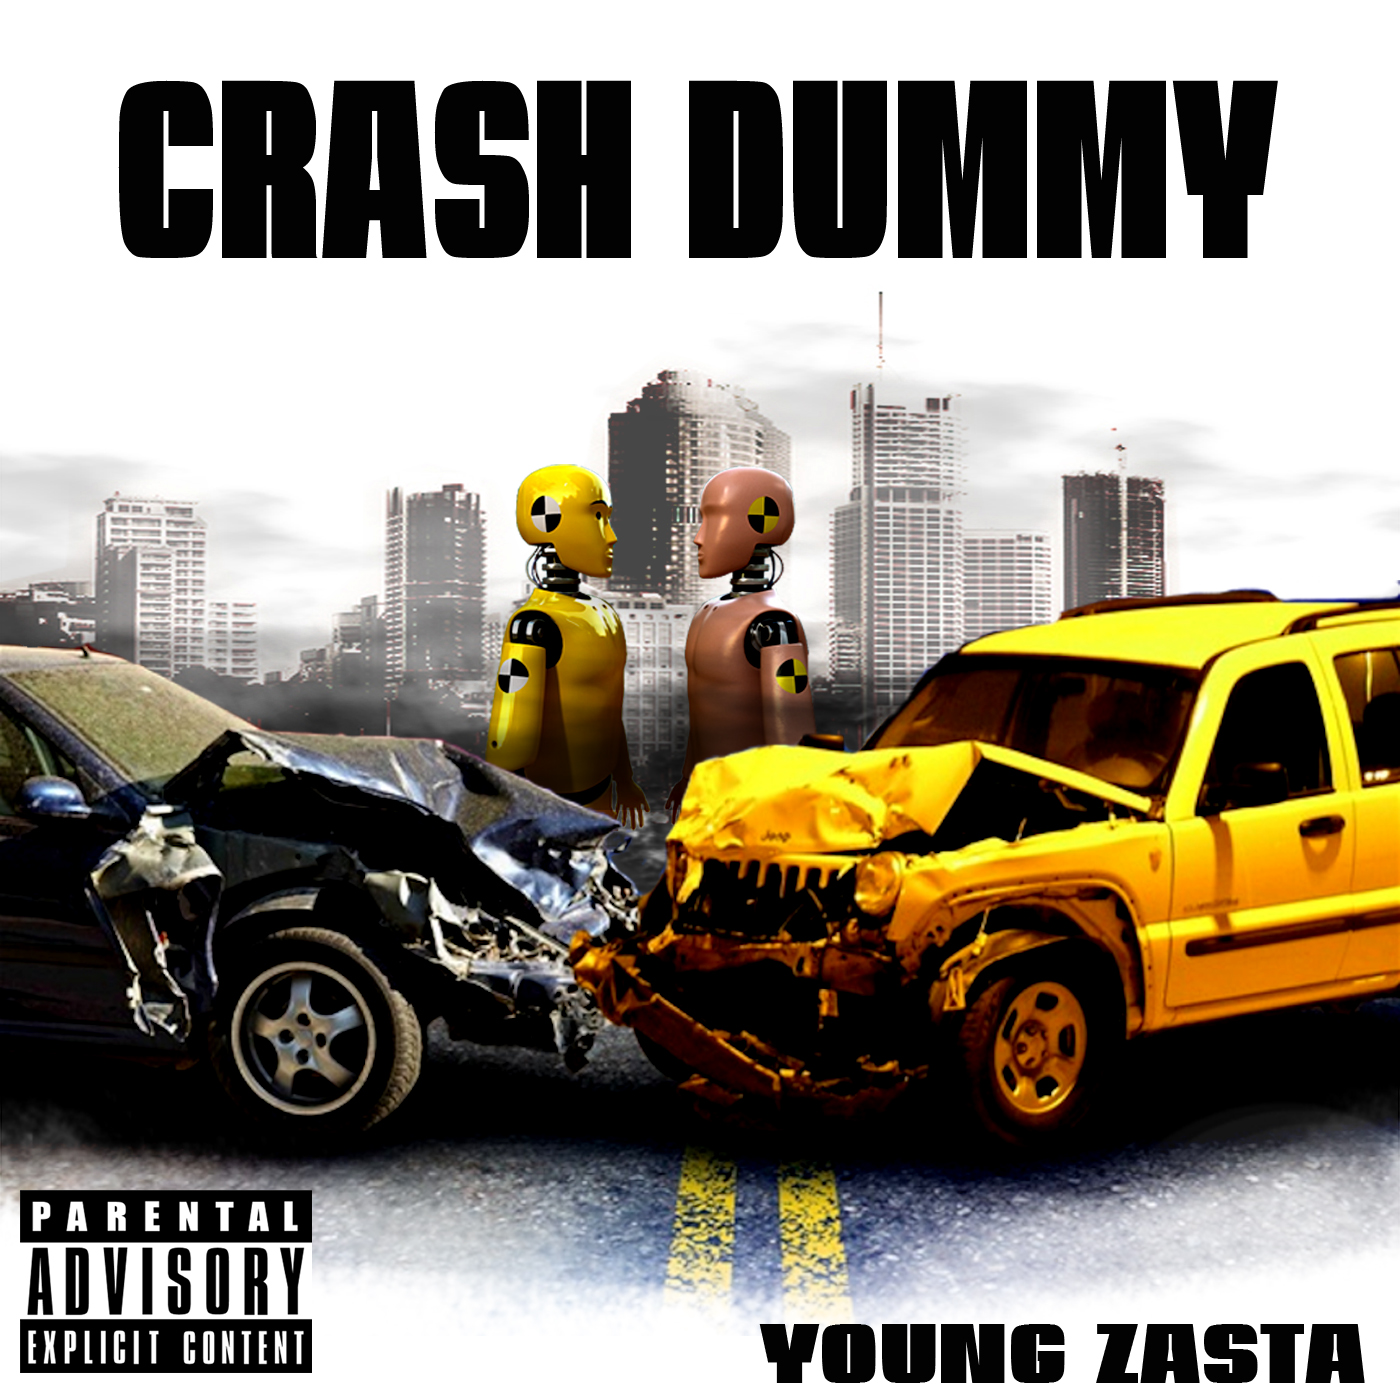 Crash dummy new cover